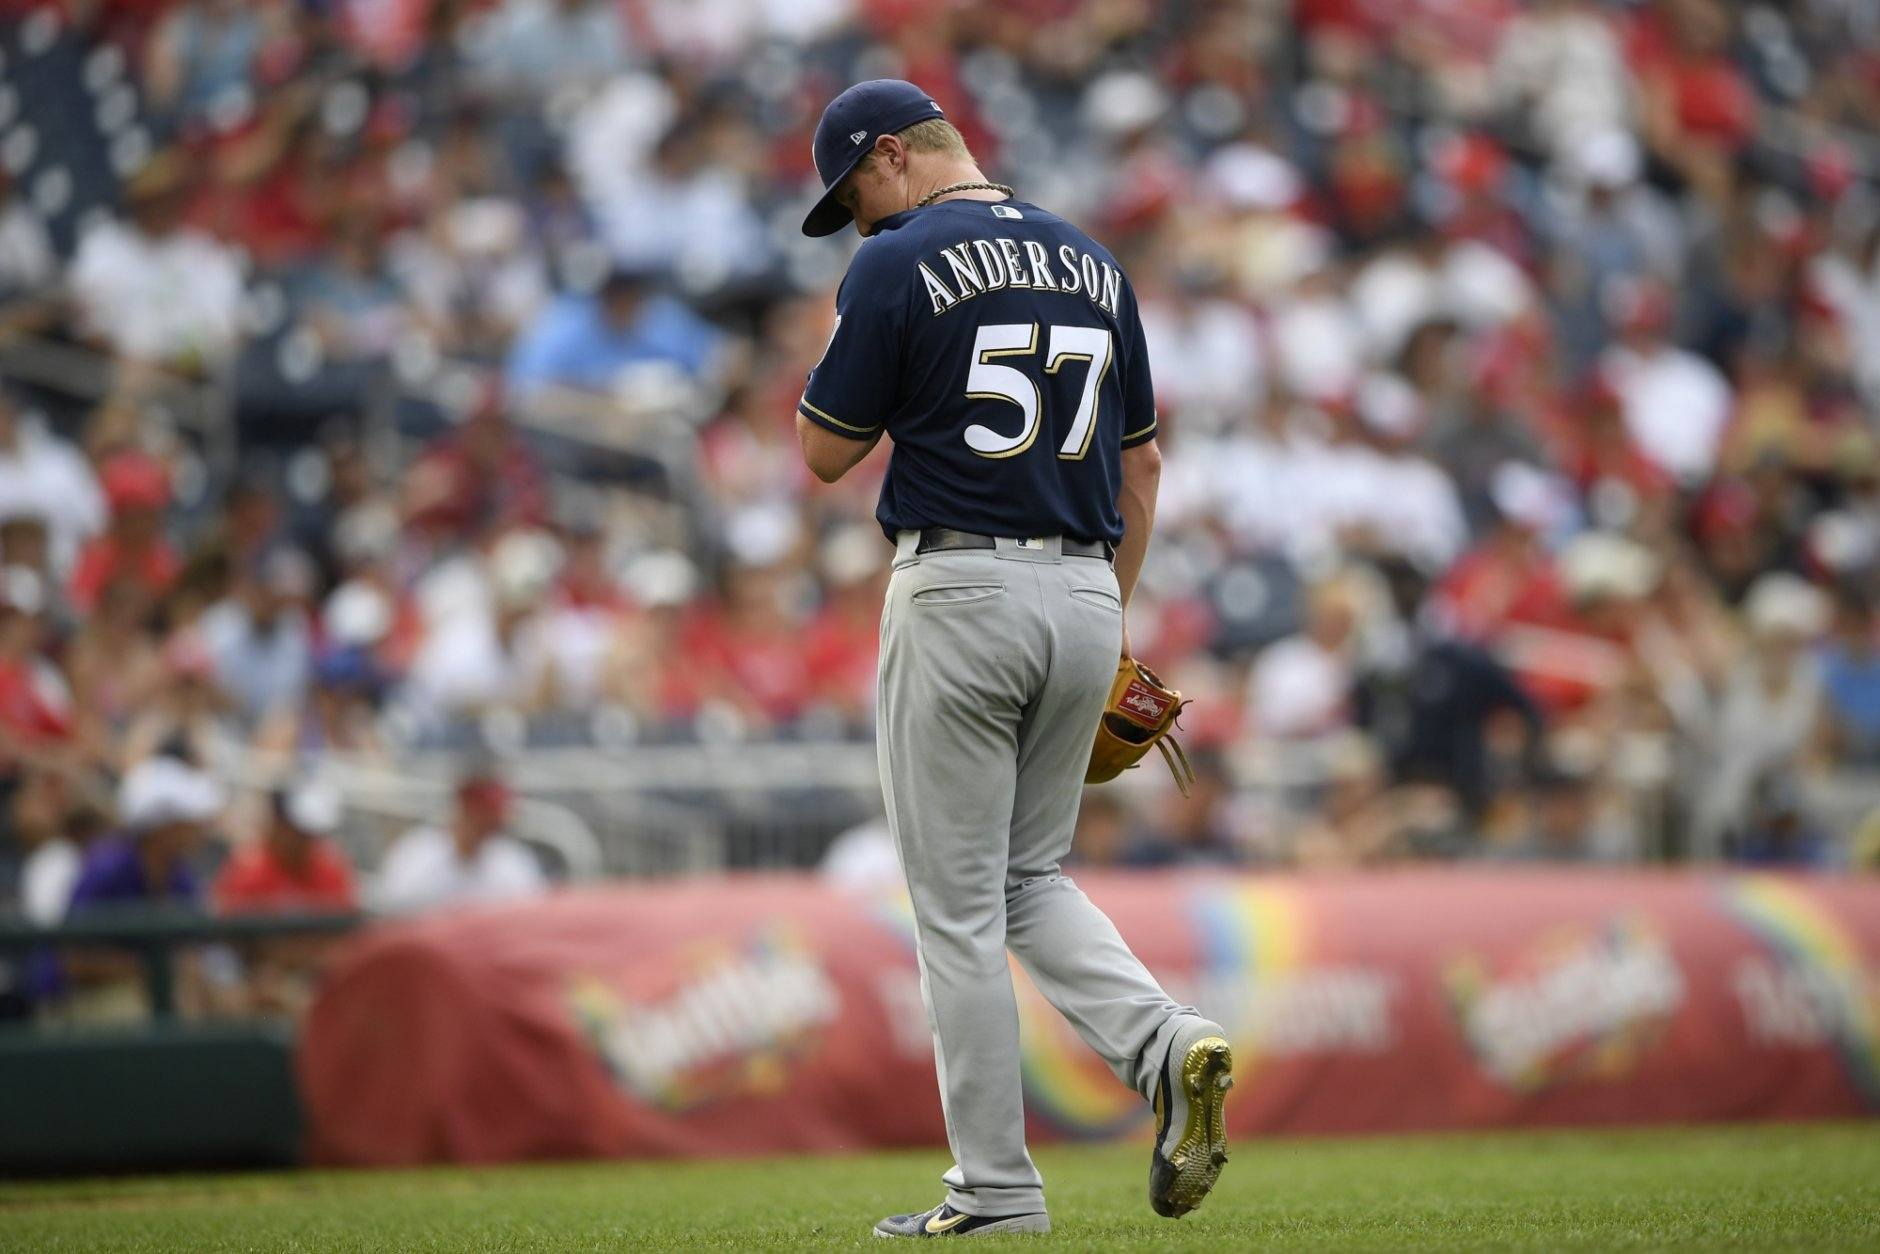 Milwaukee Brewers starting pitcher Chase Anderson walks toward the dugout after he was pulled during the third inning of a baseball game against the Washington Nationals, Sunday, Aug. 18, 2019, in Washington. (AP Photo/Nick Wass)